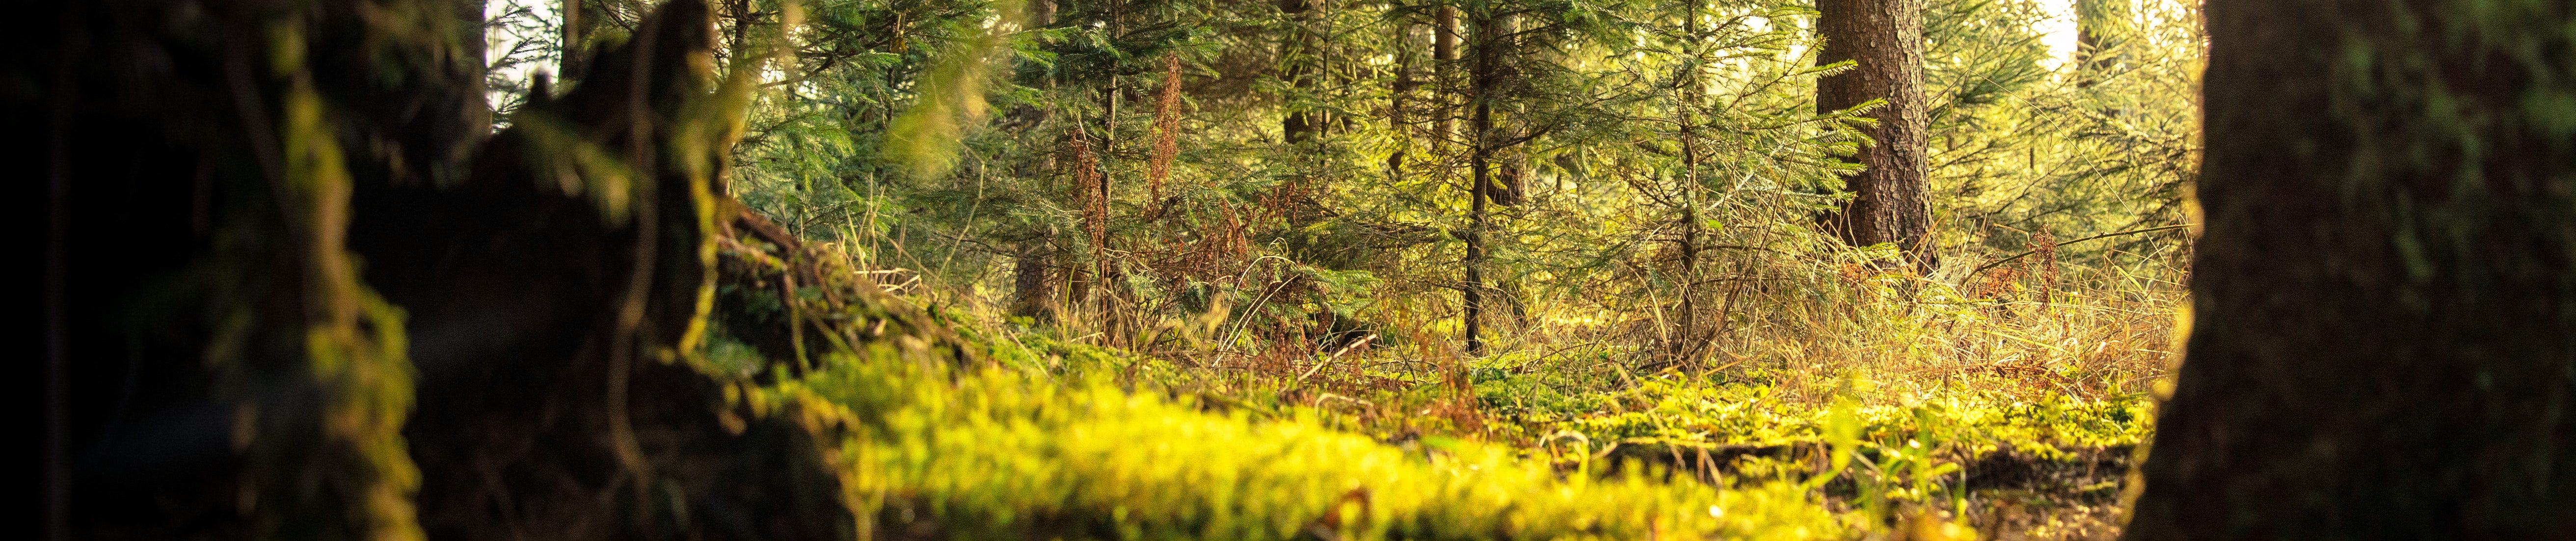 Slovenian forest of Conifer trees bathing in sunlight